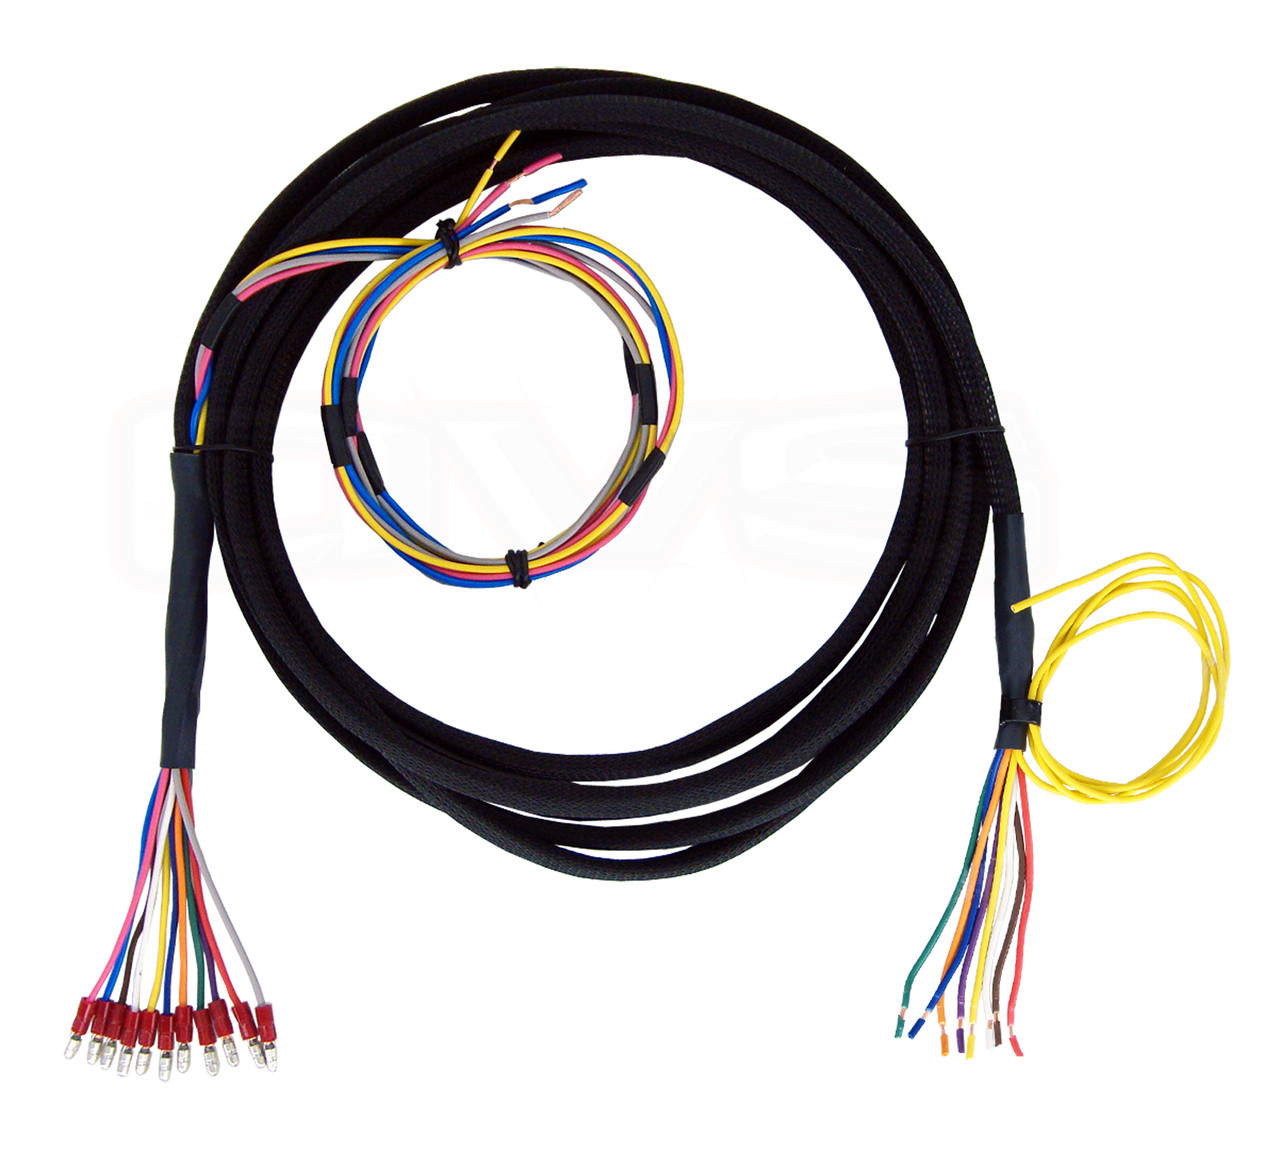 small resolution of avs valve wiring harness 10 15 20 universal to avs 7 switch wire harness tubing 7 wire wiring harness